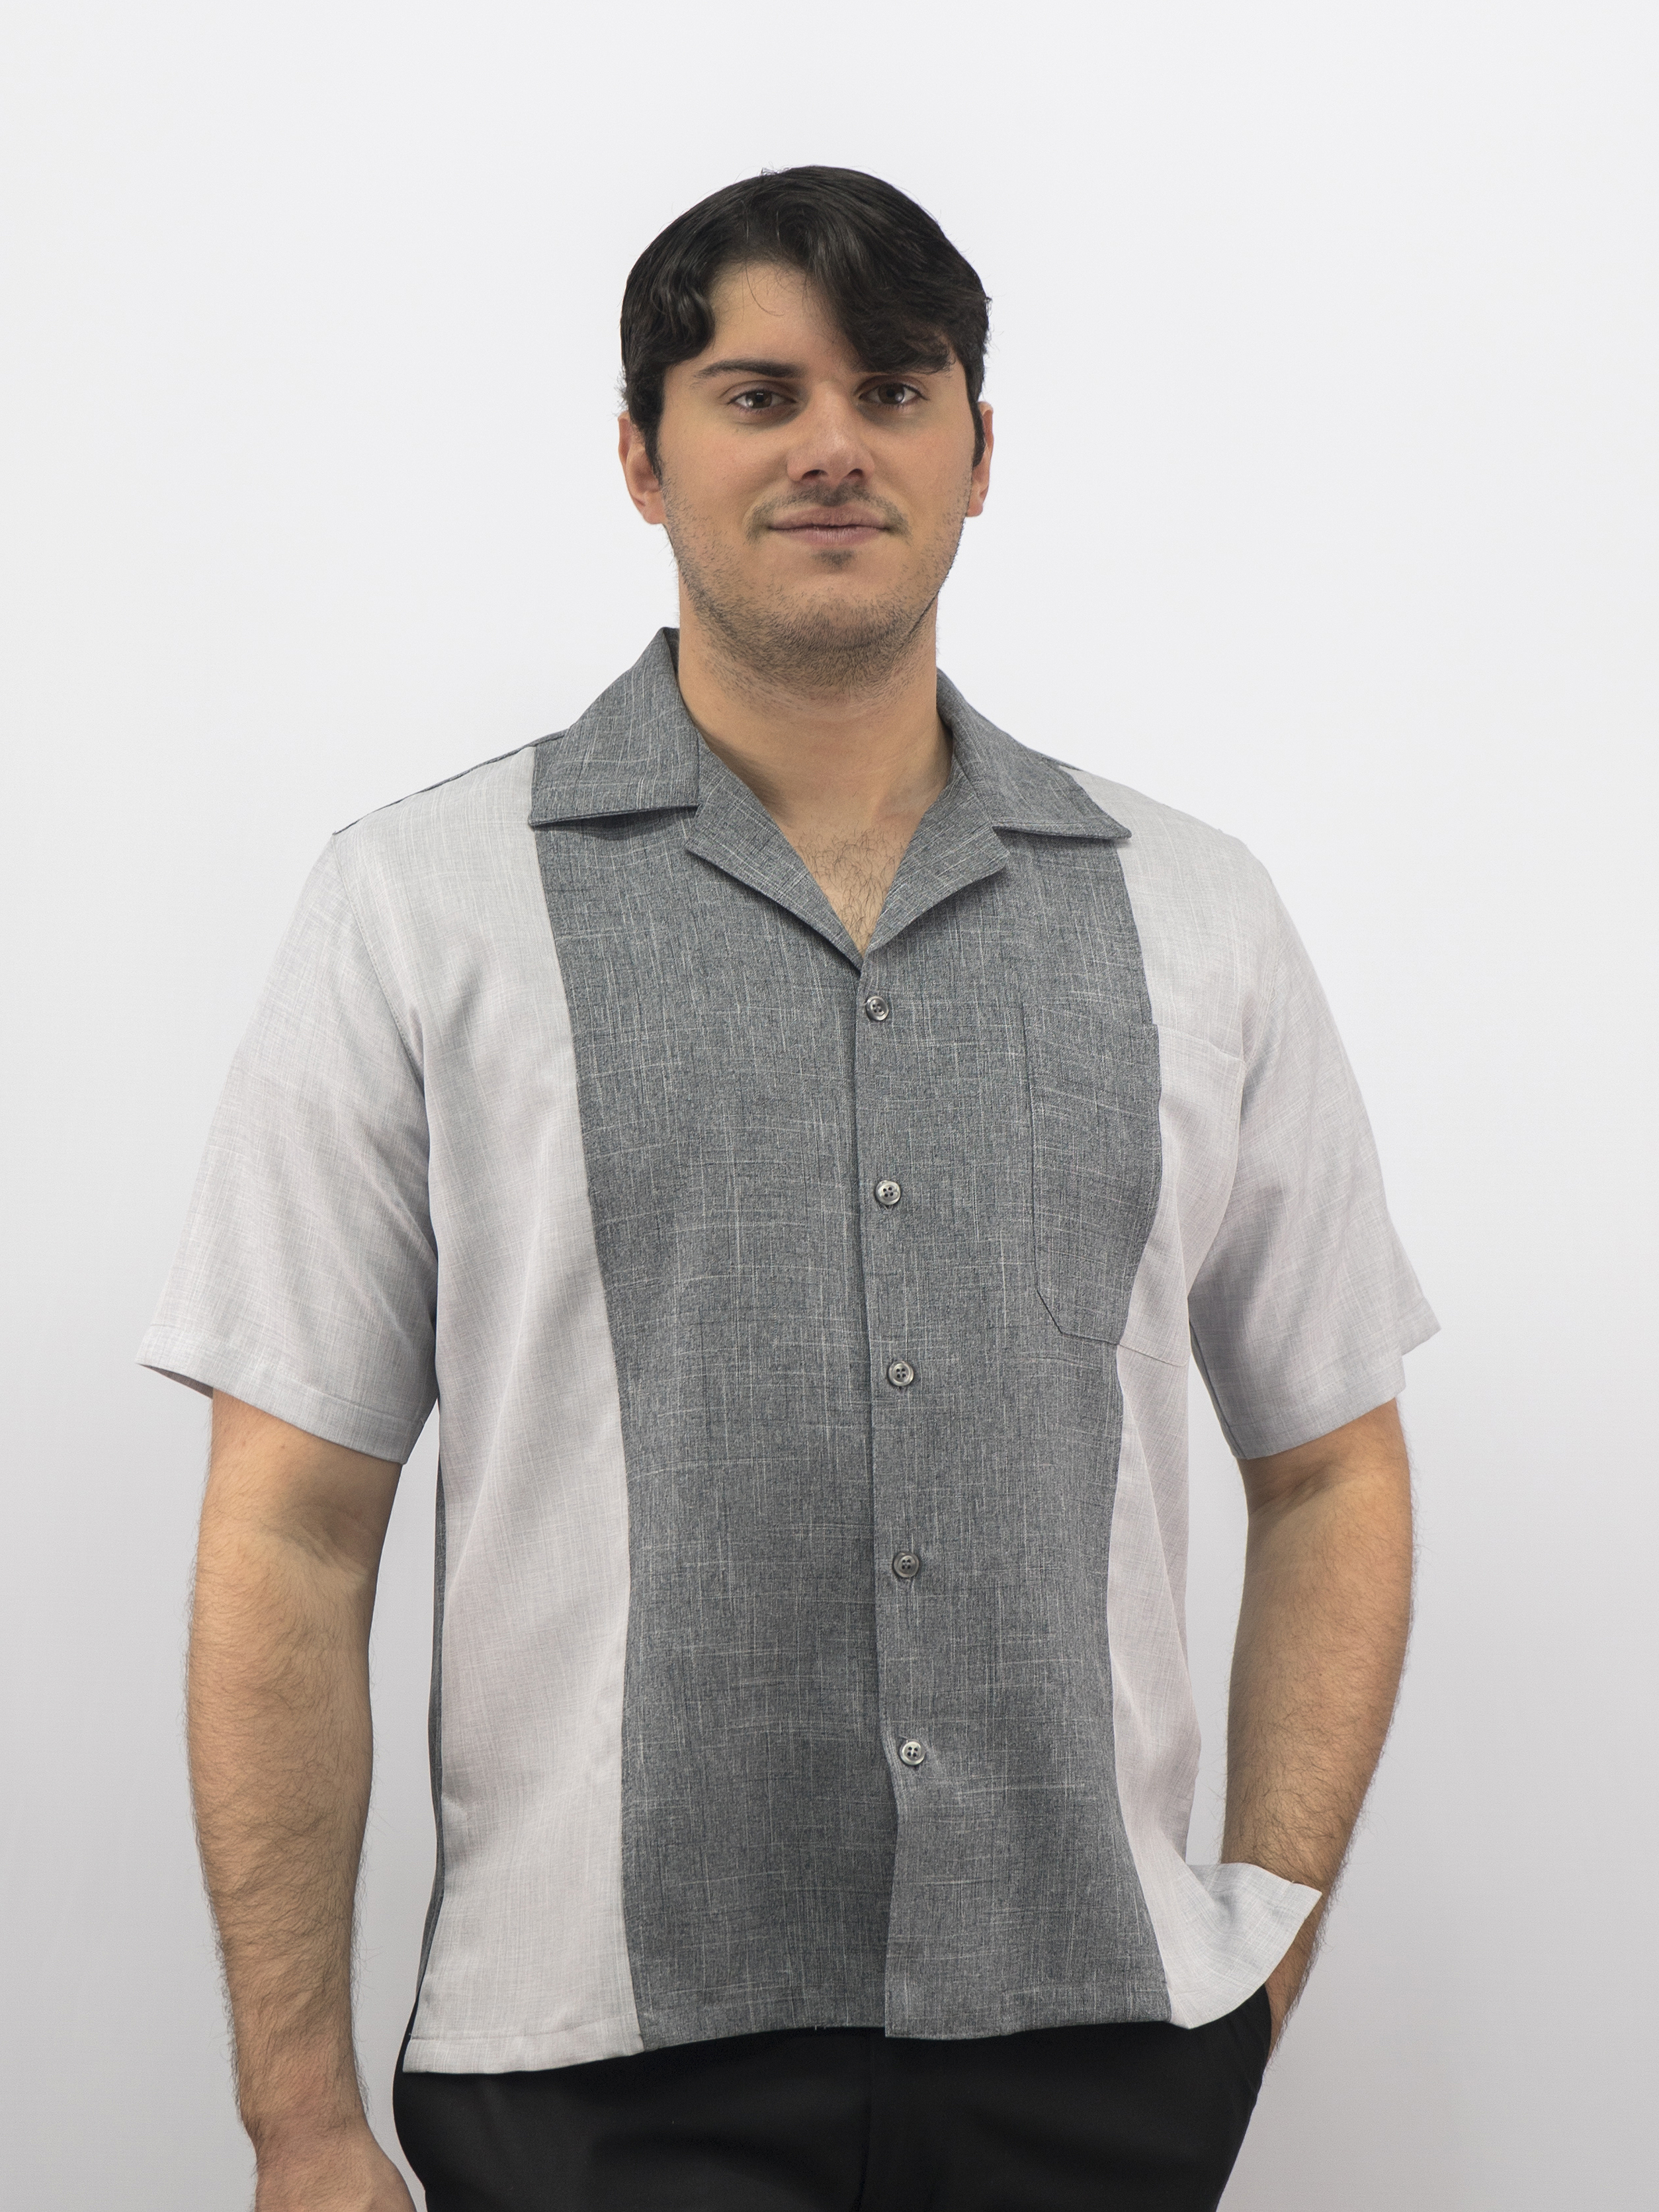 8a73f2277e6761 D'Accord Men's Casual Shirt 5894 Silver /Charcoal Made in USA ...